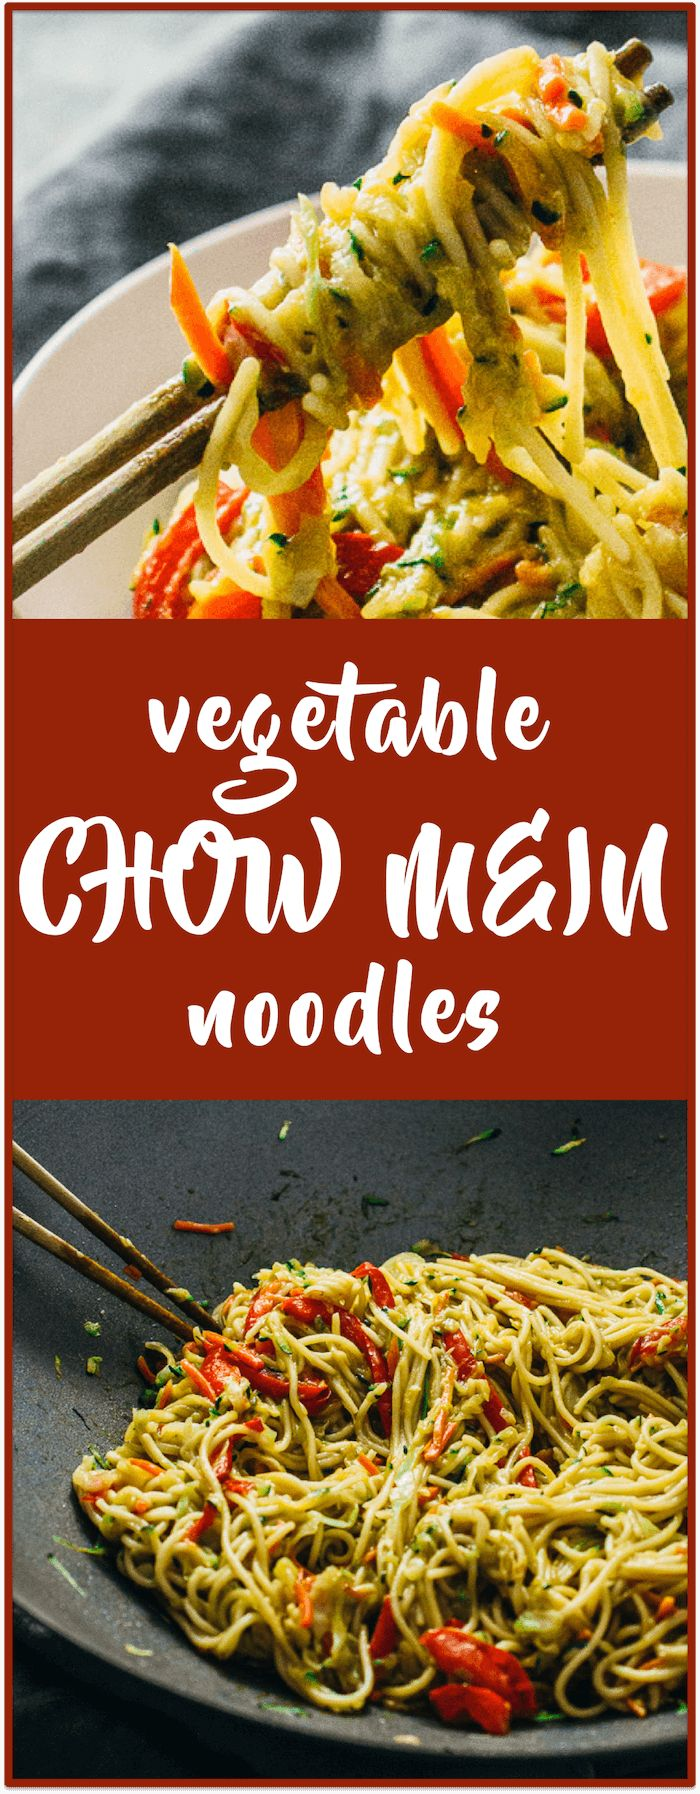 This is my family's recipe for vegetable chow mein noodles, which includes cabbage, carrots, zucchini, red bell pepper, and soy sauce. It's a healthy stir-fry as well as an easy weeknight dinner.